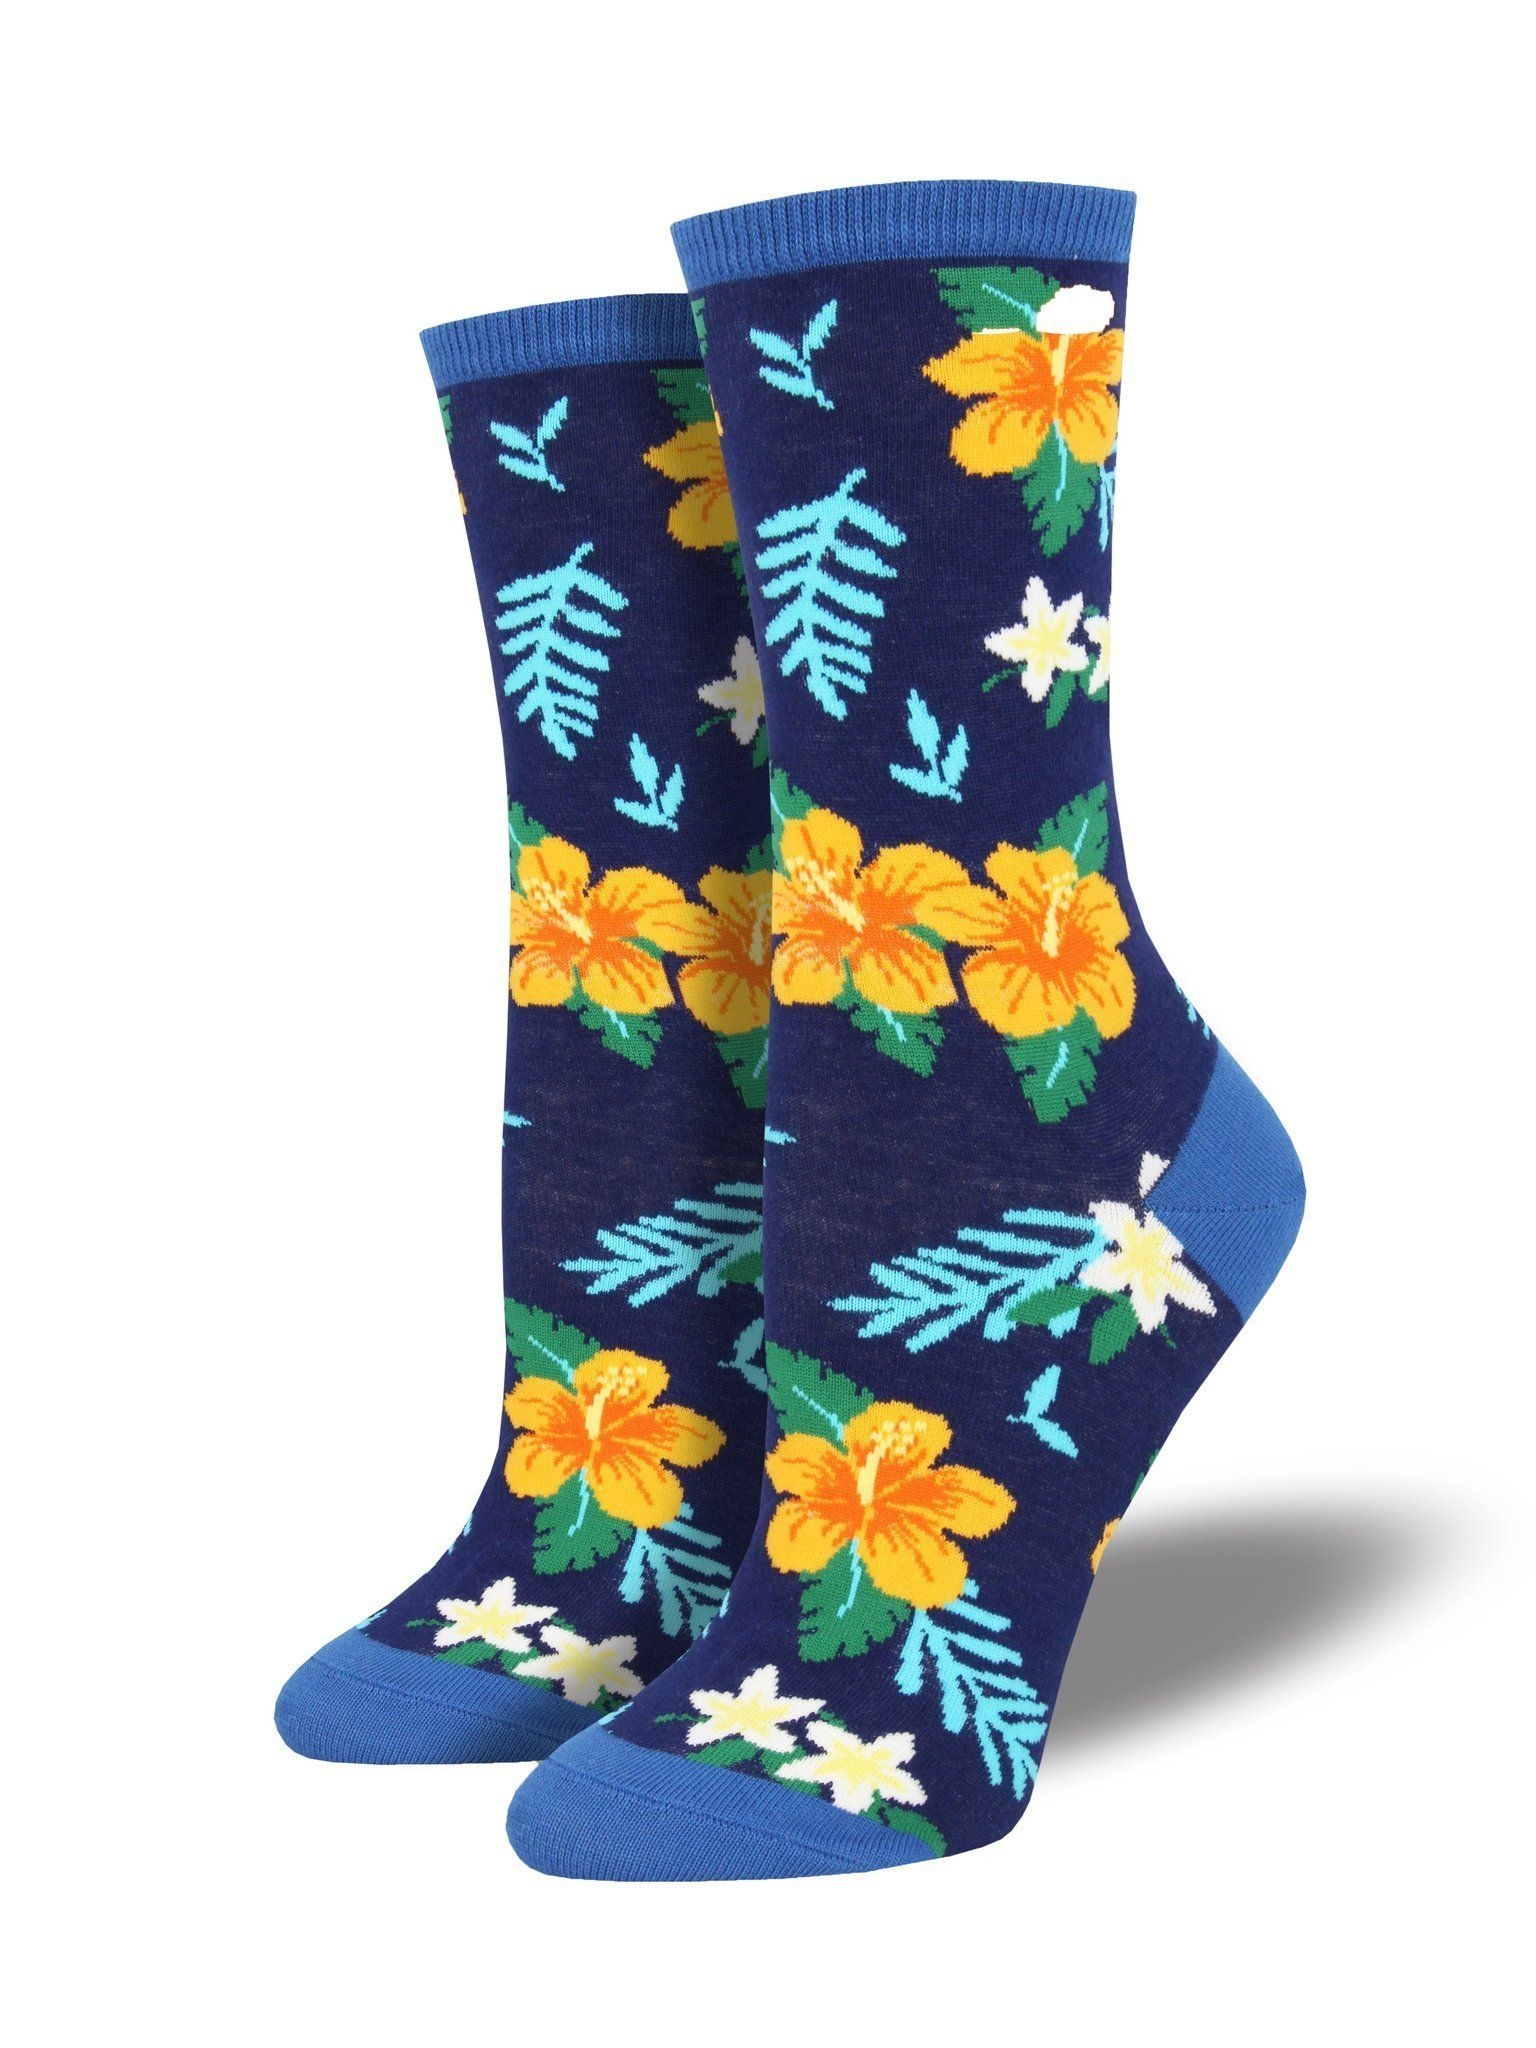 Socksmith - Aloha Floral Crew Socks | Women's - Knock Your Socks Off